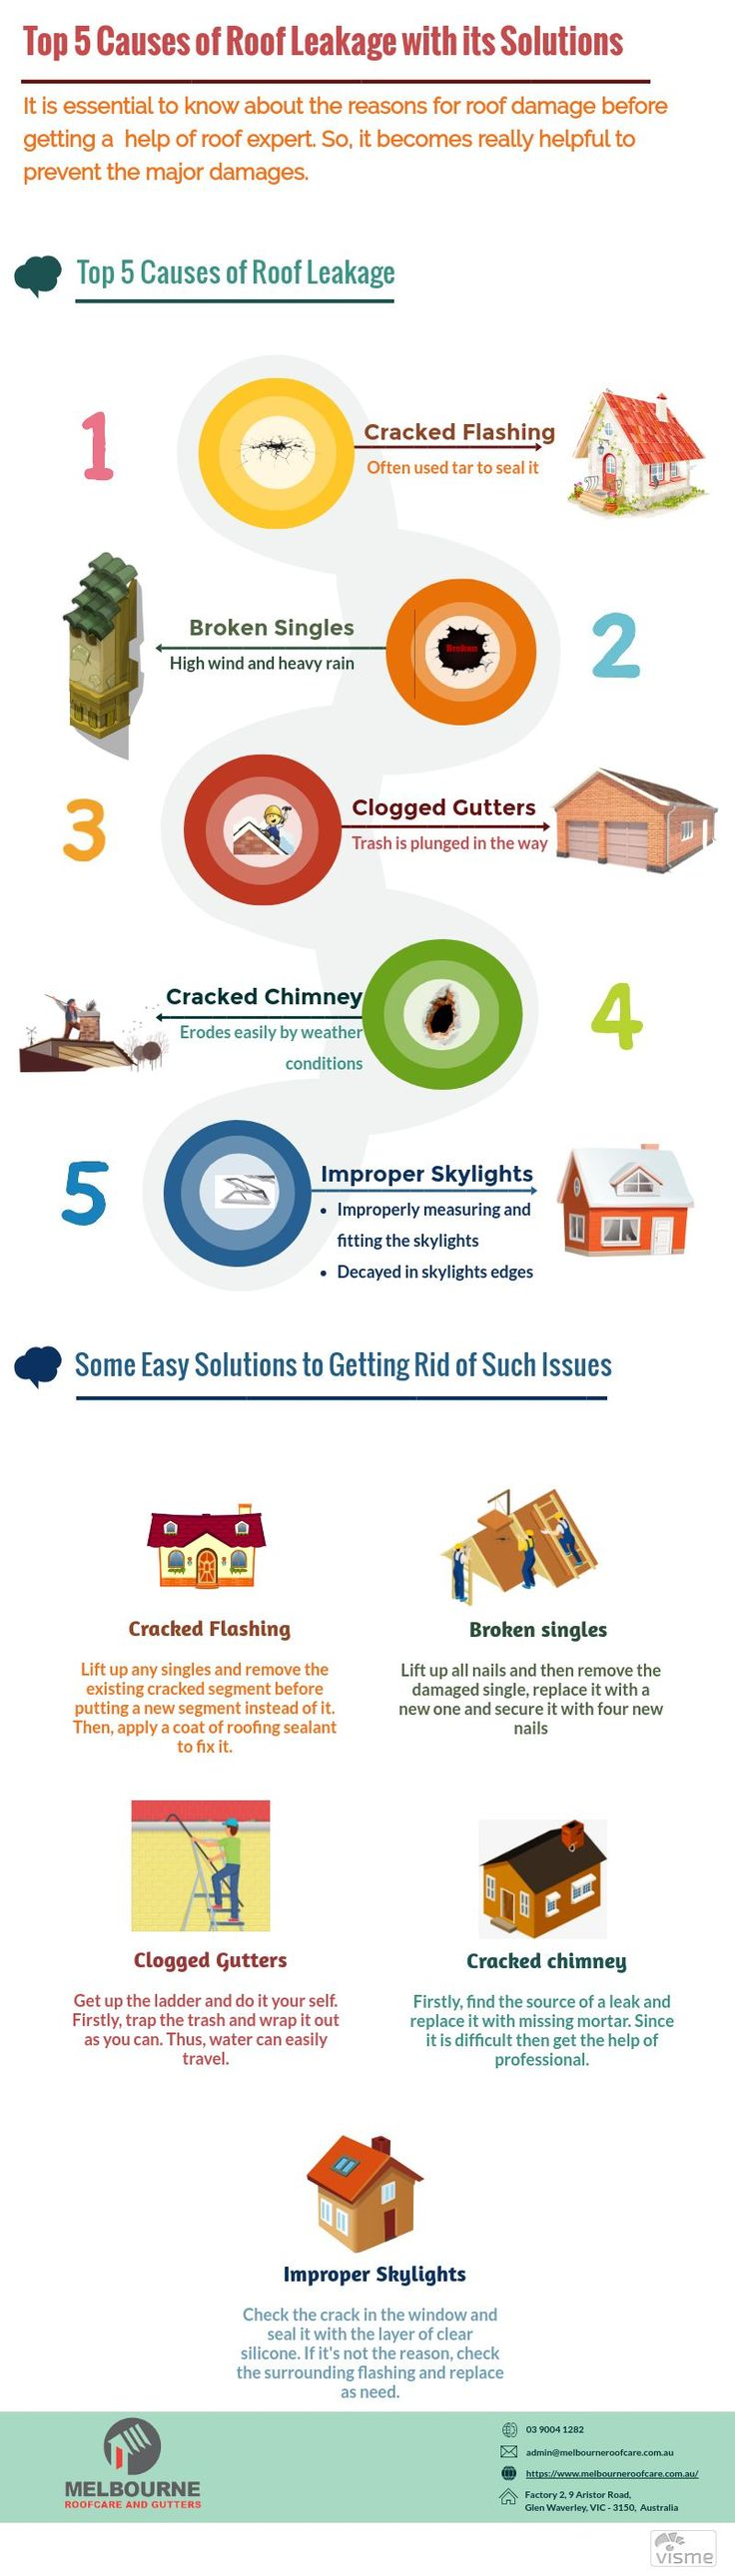 Top 5 Causes of #Roof #Leakage with its Solutions.  #roofing #roof  #homeimprovement  #infographic